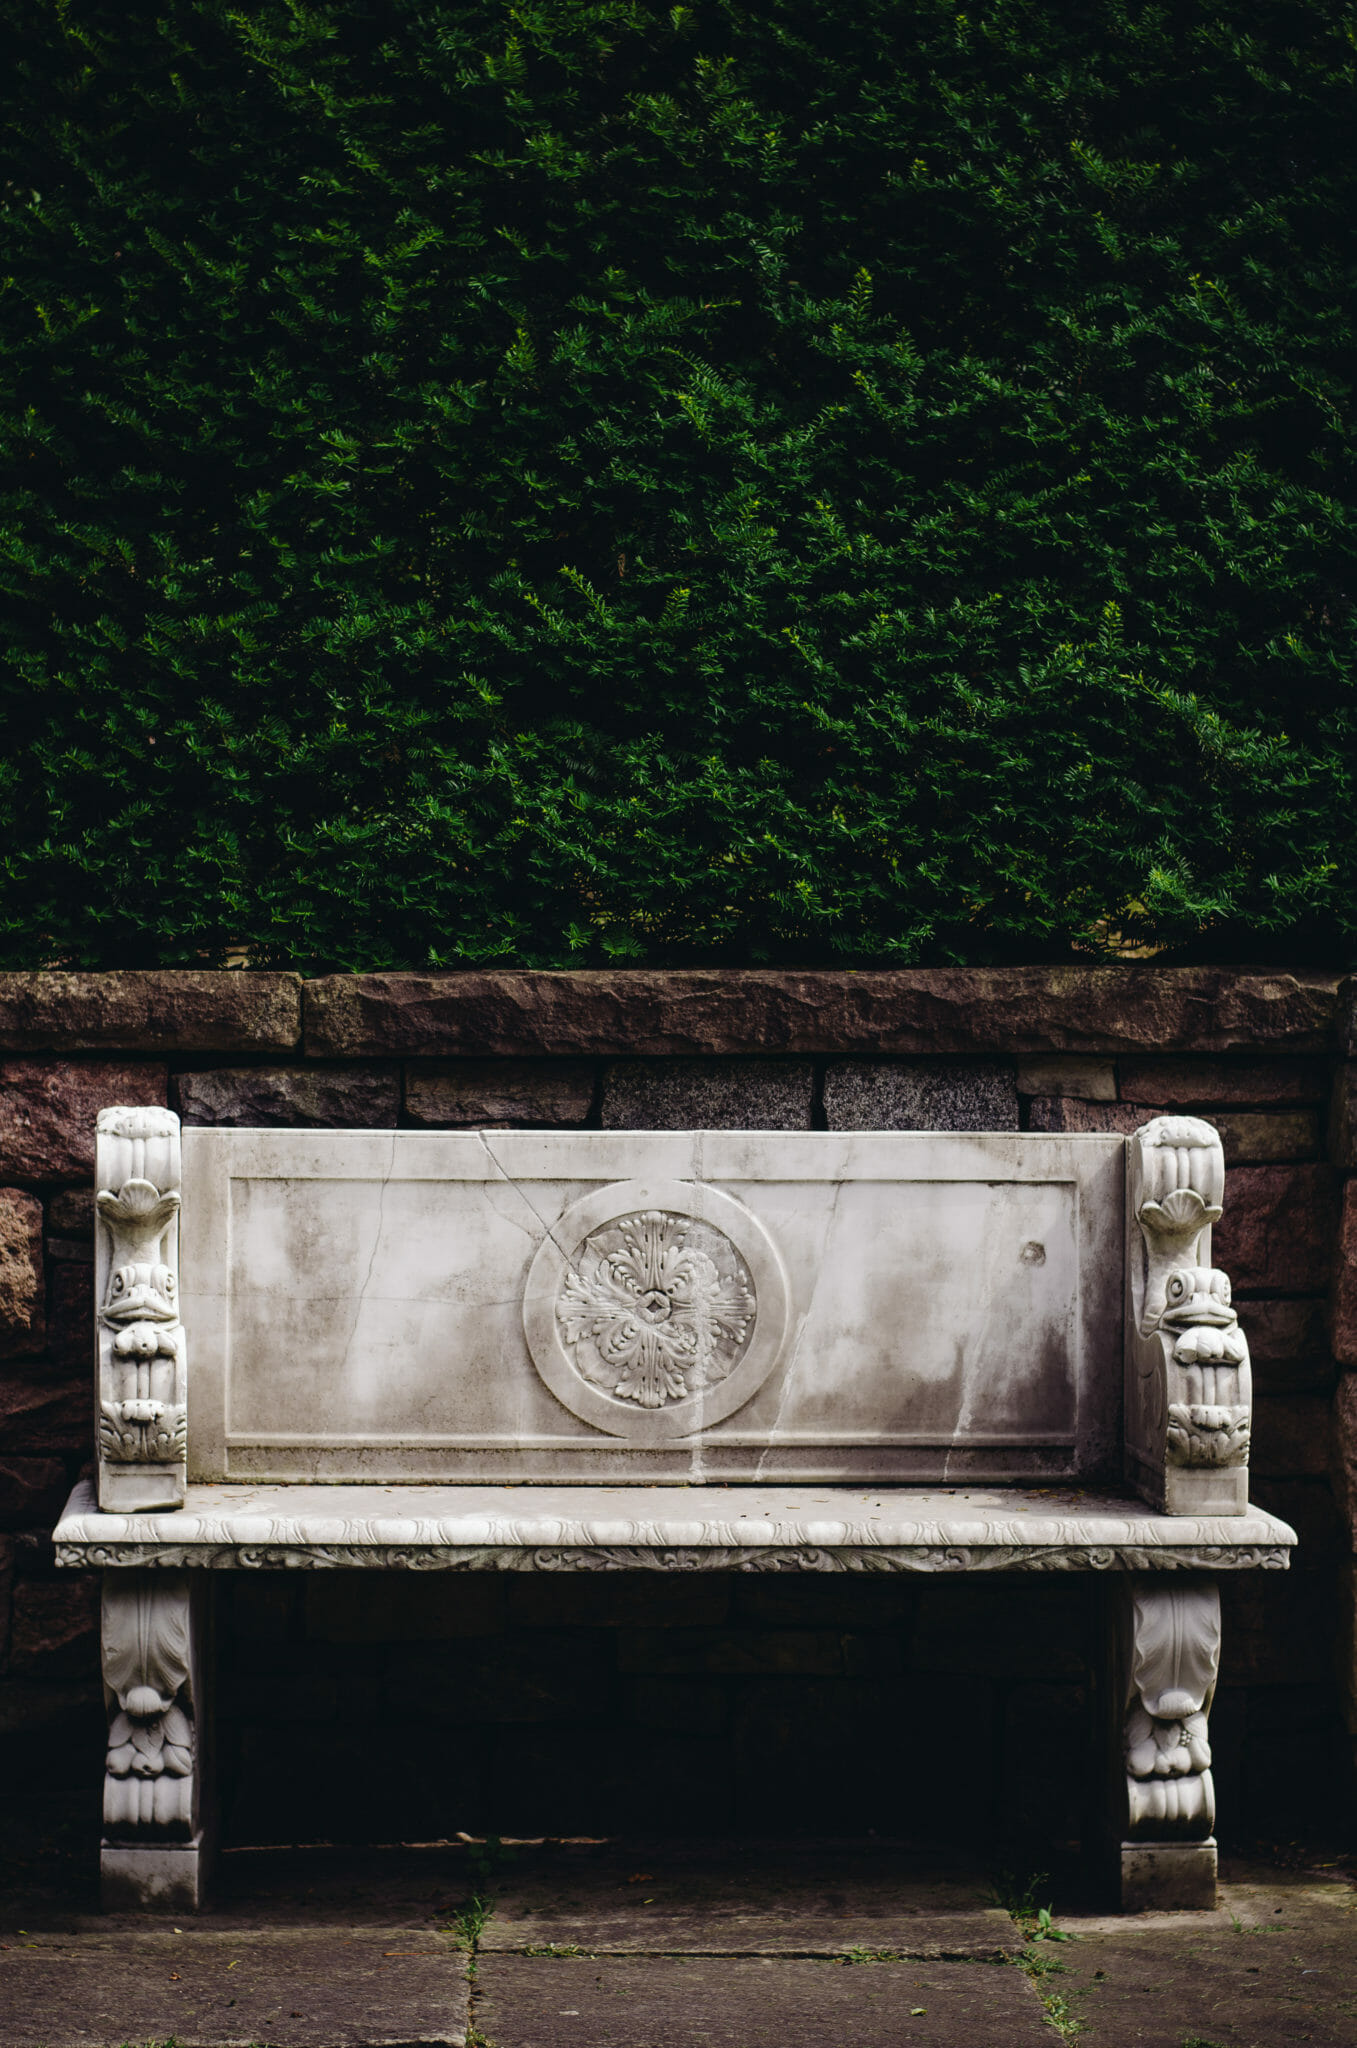 stone bench in the garden at parkwood